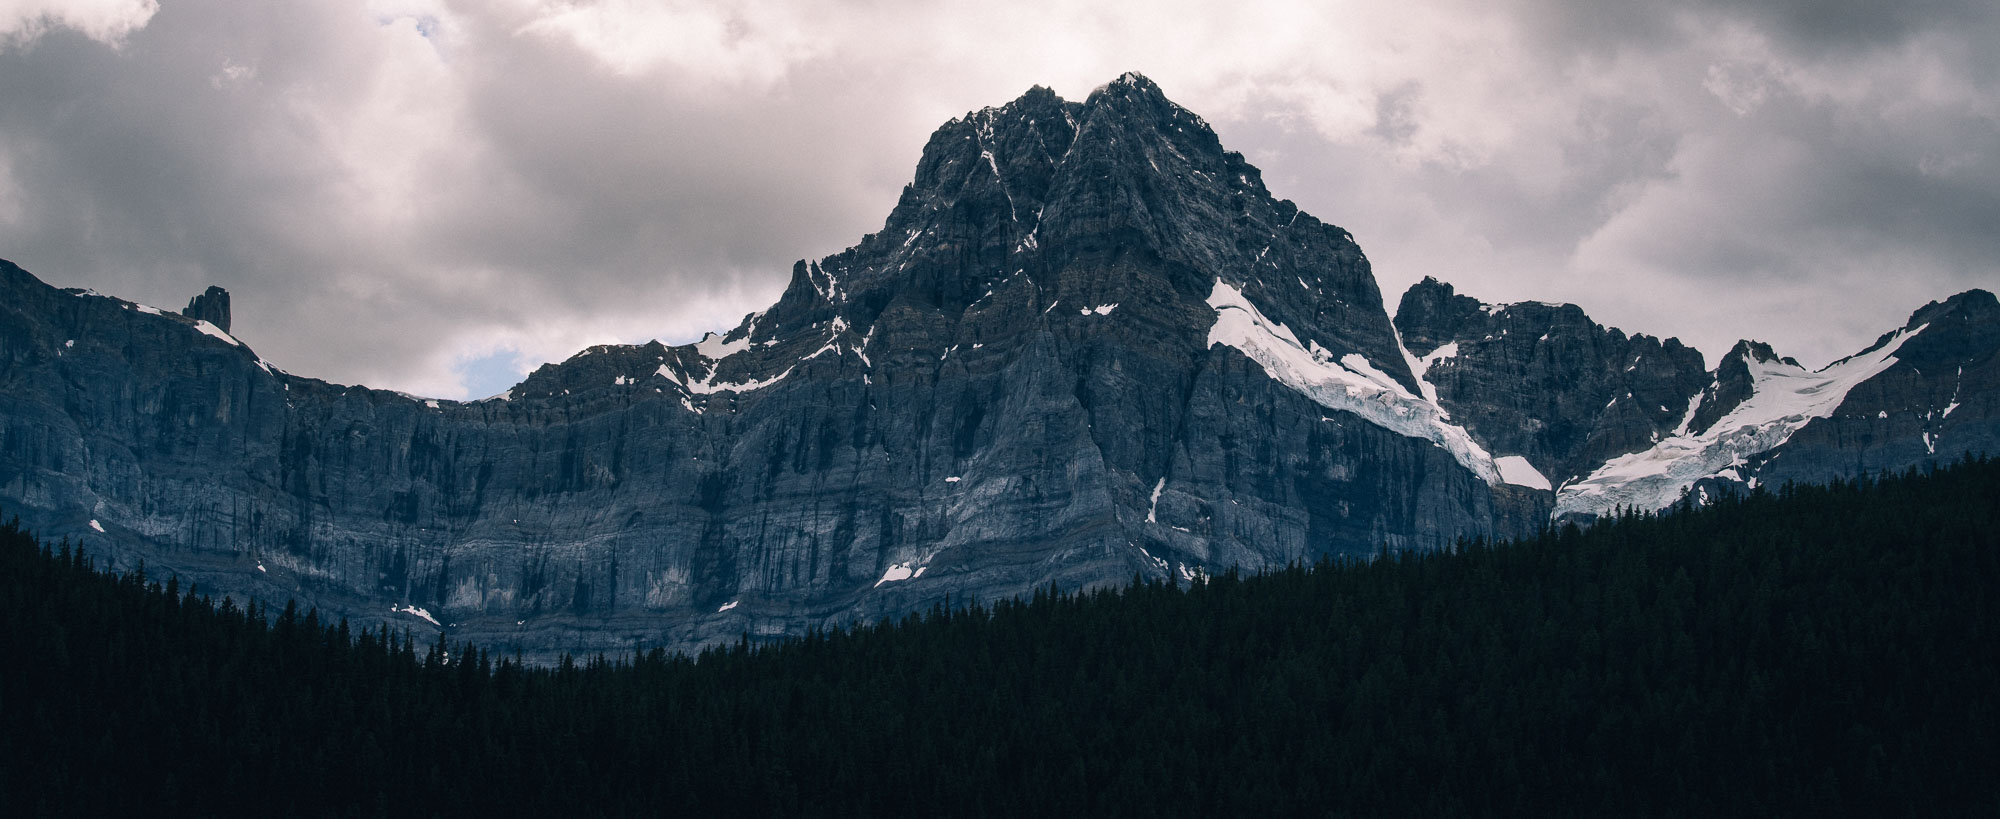 Jasper to Banff: The Icefields Parkway